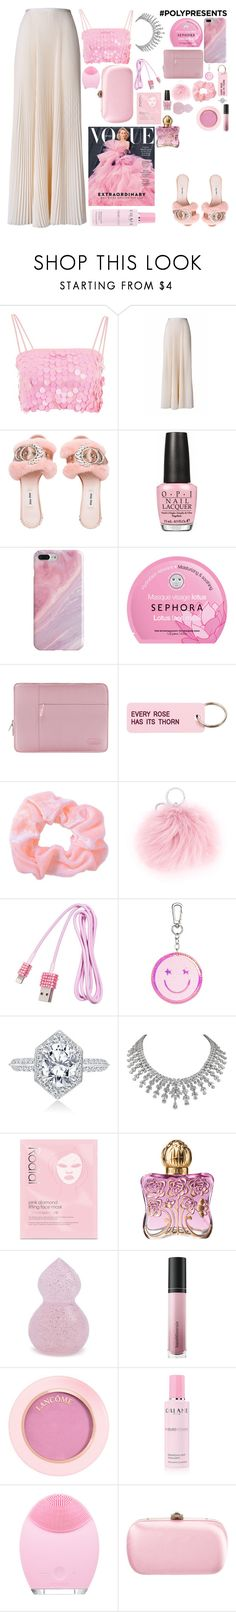 """""""#PolyPresents: New Year's Resolutions $"""" by gb041112 ❤ liked on Polyvore featuring Motel, Esme Vie, OPI, Recover, Sephora Collection, Various Projects, CITYSHOP, Rodial, Anna Sui and Forever 21"""